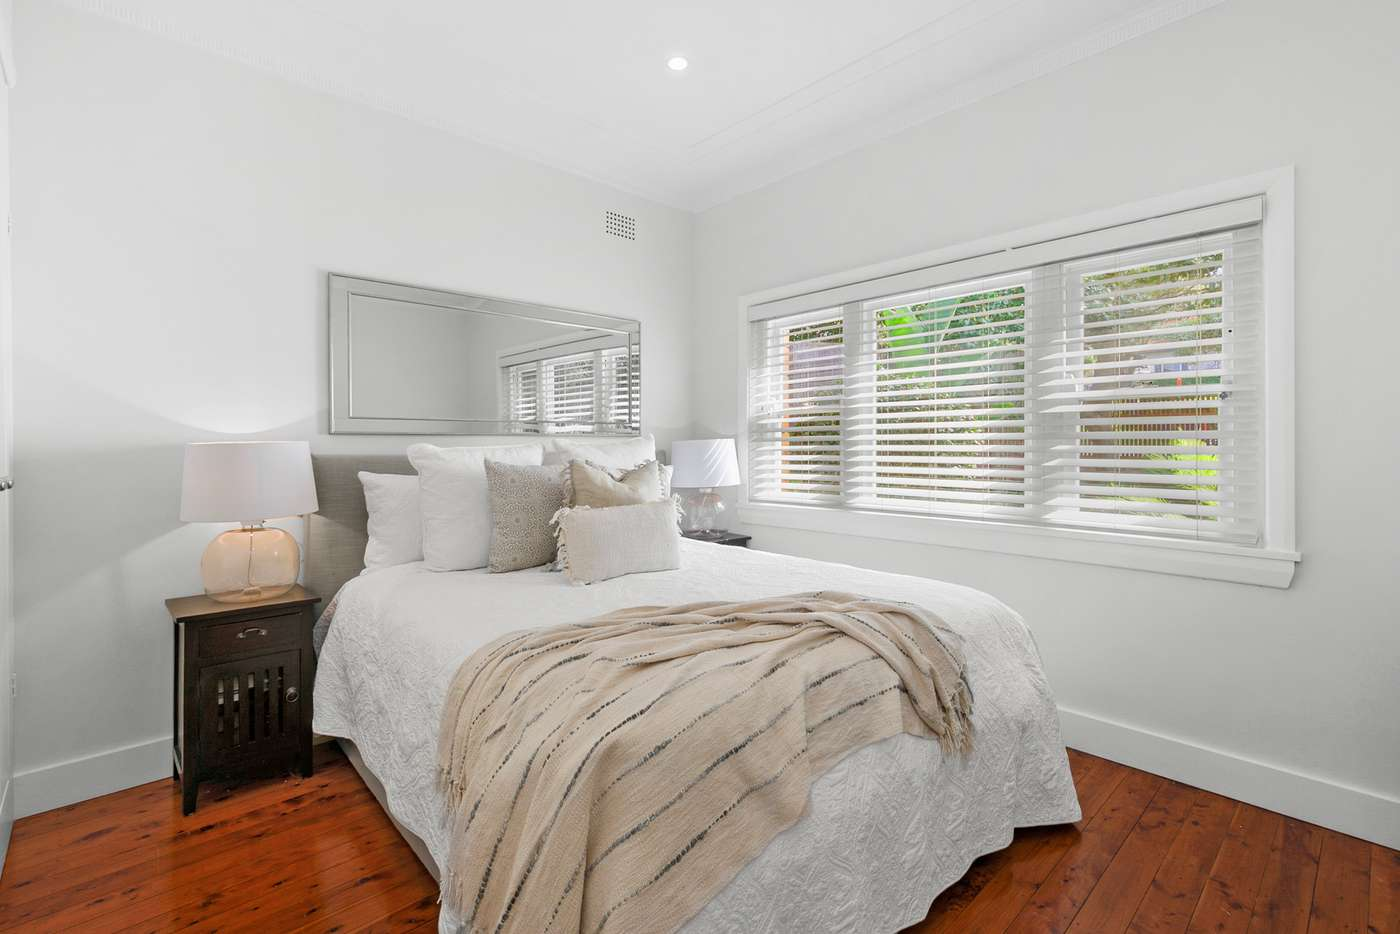 Sixth view of Homely house listing, 2 Frenchs Forest Road, Seaforth NSW 2092